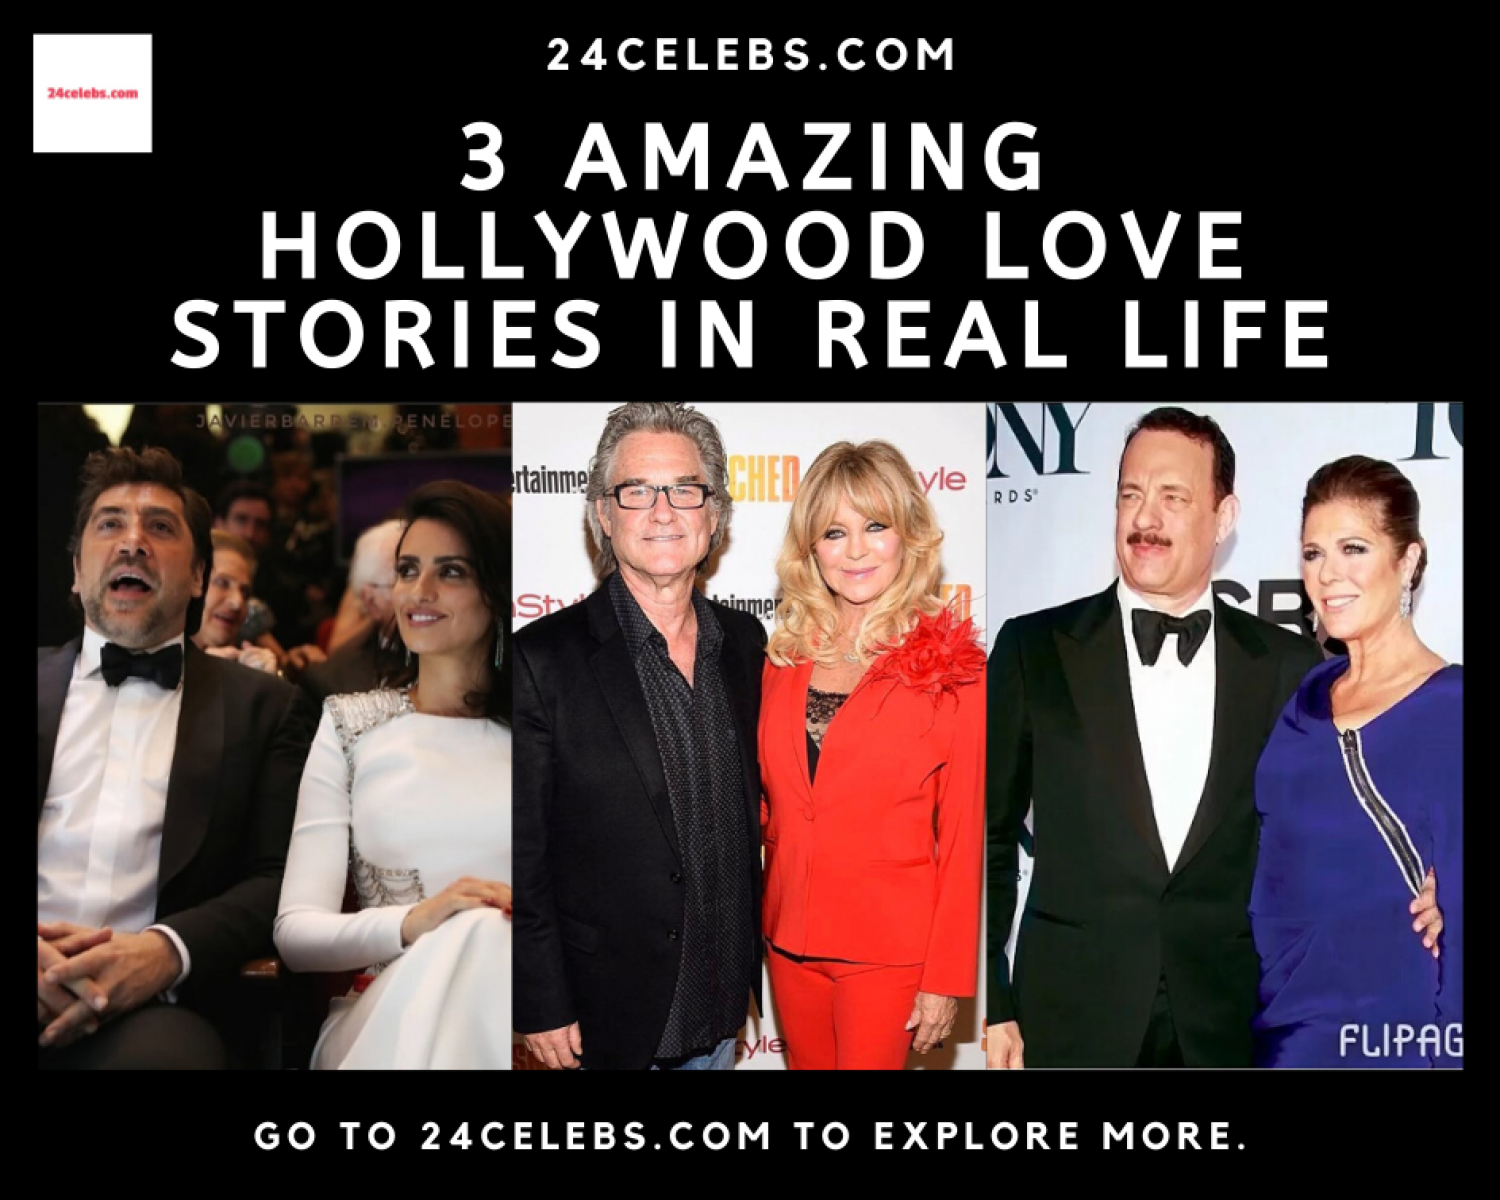 3 Amazing Hollywood Love Stories in Real Life Infographic